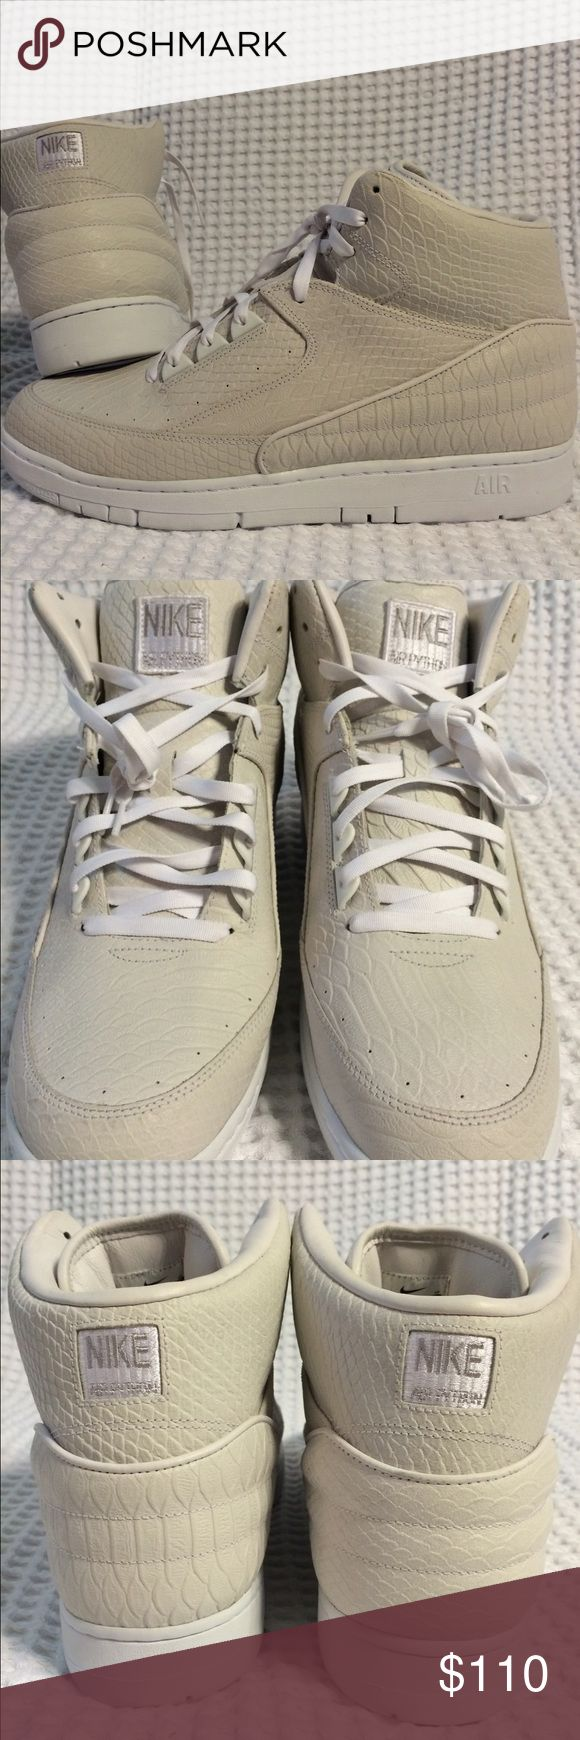 Nike Air Pythons BRAND NEW, NEVER WORN Nike Air Python in White. SIZE is a Men's 13. Retails for $150 asking $110. If you're interested or have any questions, message me or text me at 5O3 47nine 7five98  Tags: Kicks, Tennis shoes, Jordan's, Nike, Adidas, Kobe, Hoodie, Sweatshirt, Jacket, zip-up, Cleveland Cavaliers, Cavs, Portland Trail Blazers, Basketball, Air Max, LeBron James, Kevin Durant, NBA, NFL, Kicks, Dame, Steph Curry, Kobe Bryant, Black Mamba, Under Armor, King James, Spikes…